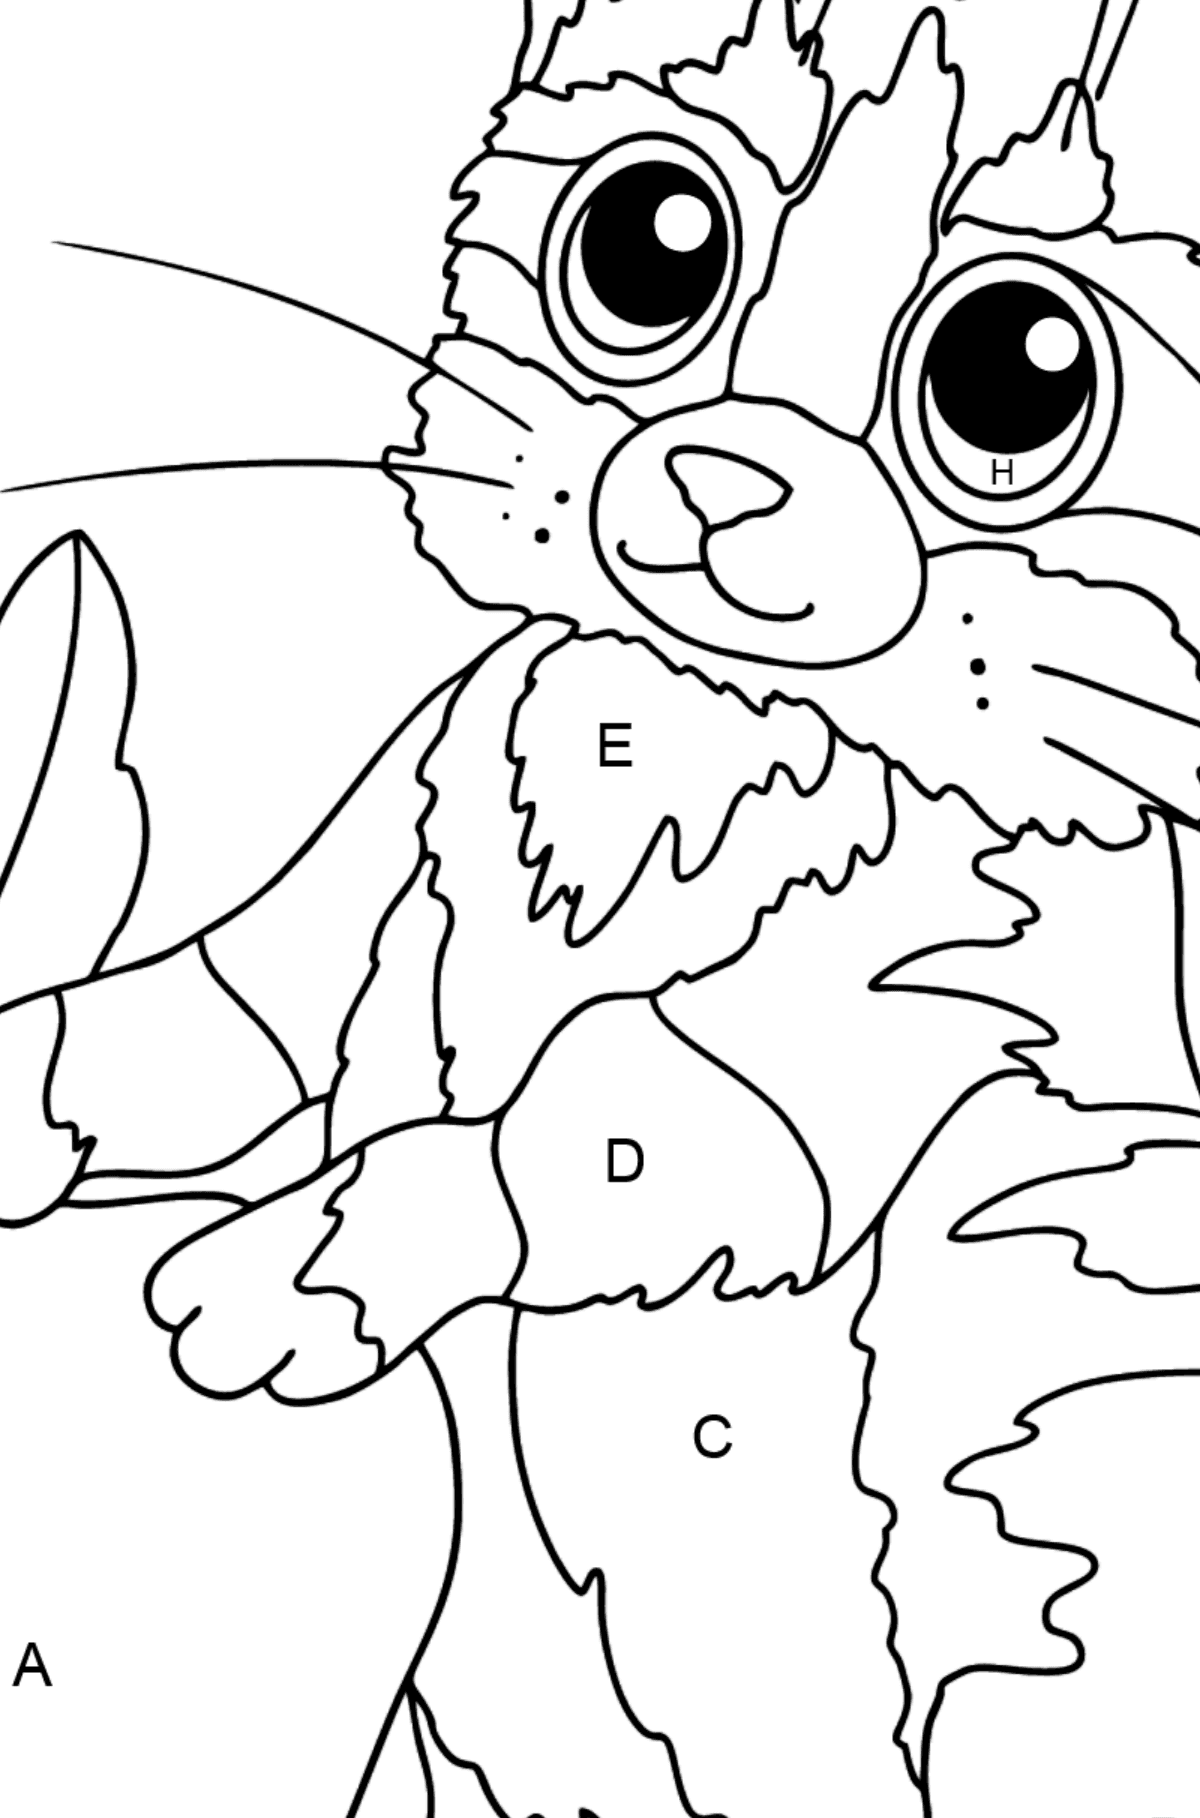 A Kitten is Playing with an Apple - Stampy cat coloring page - Coloring by Letters for Kids